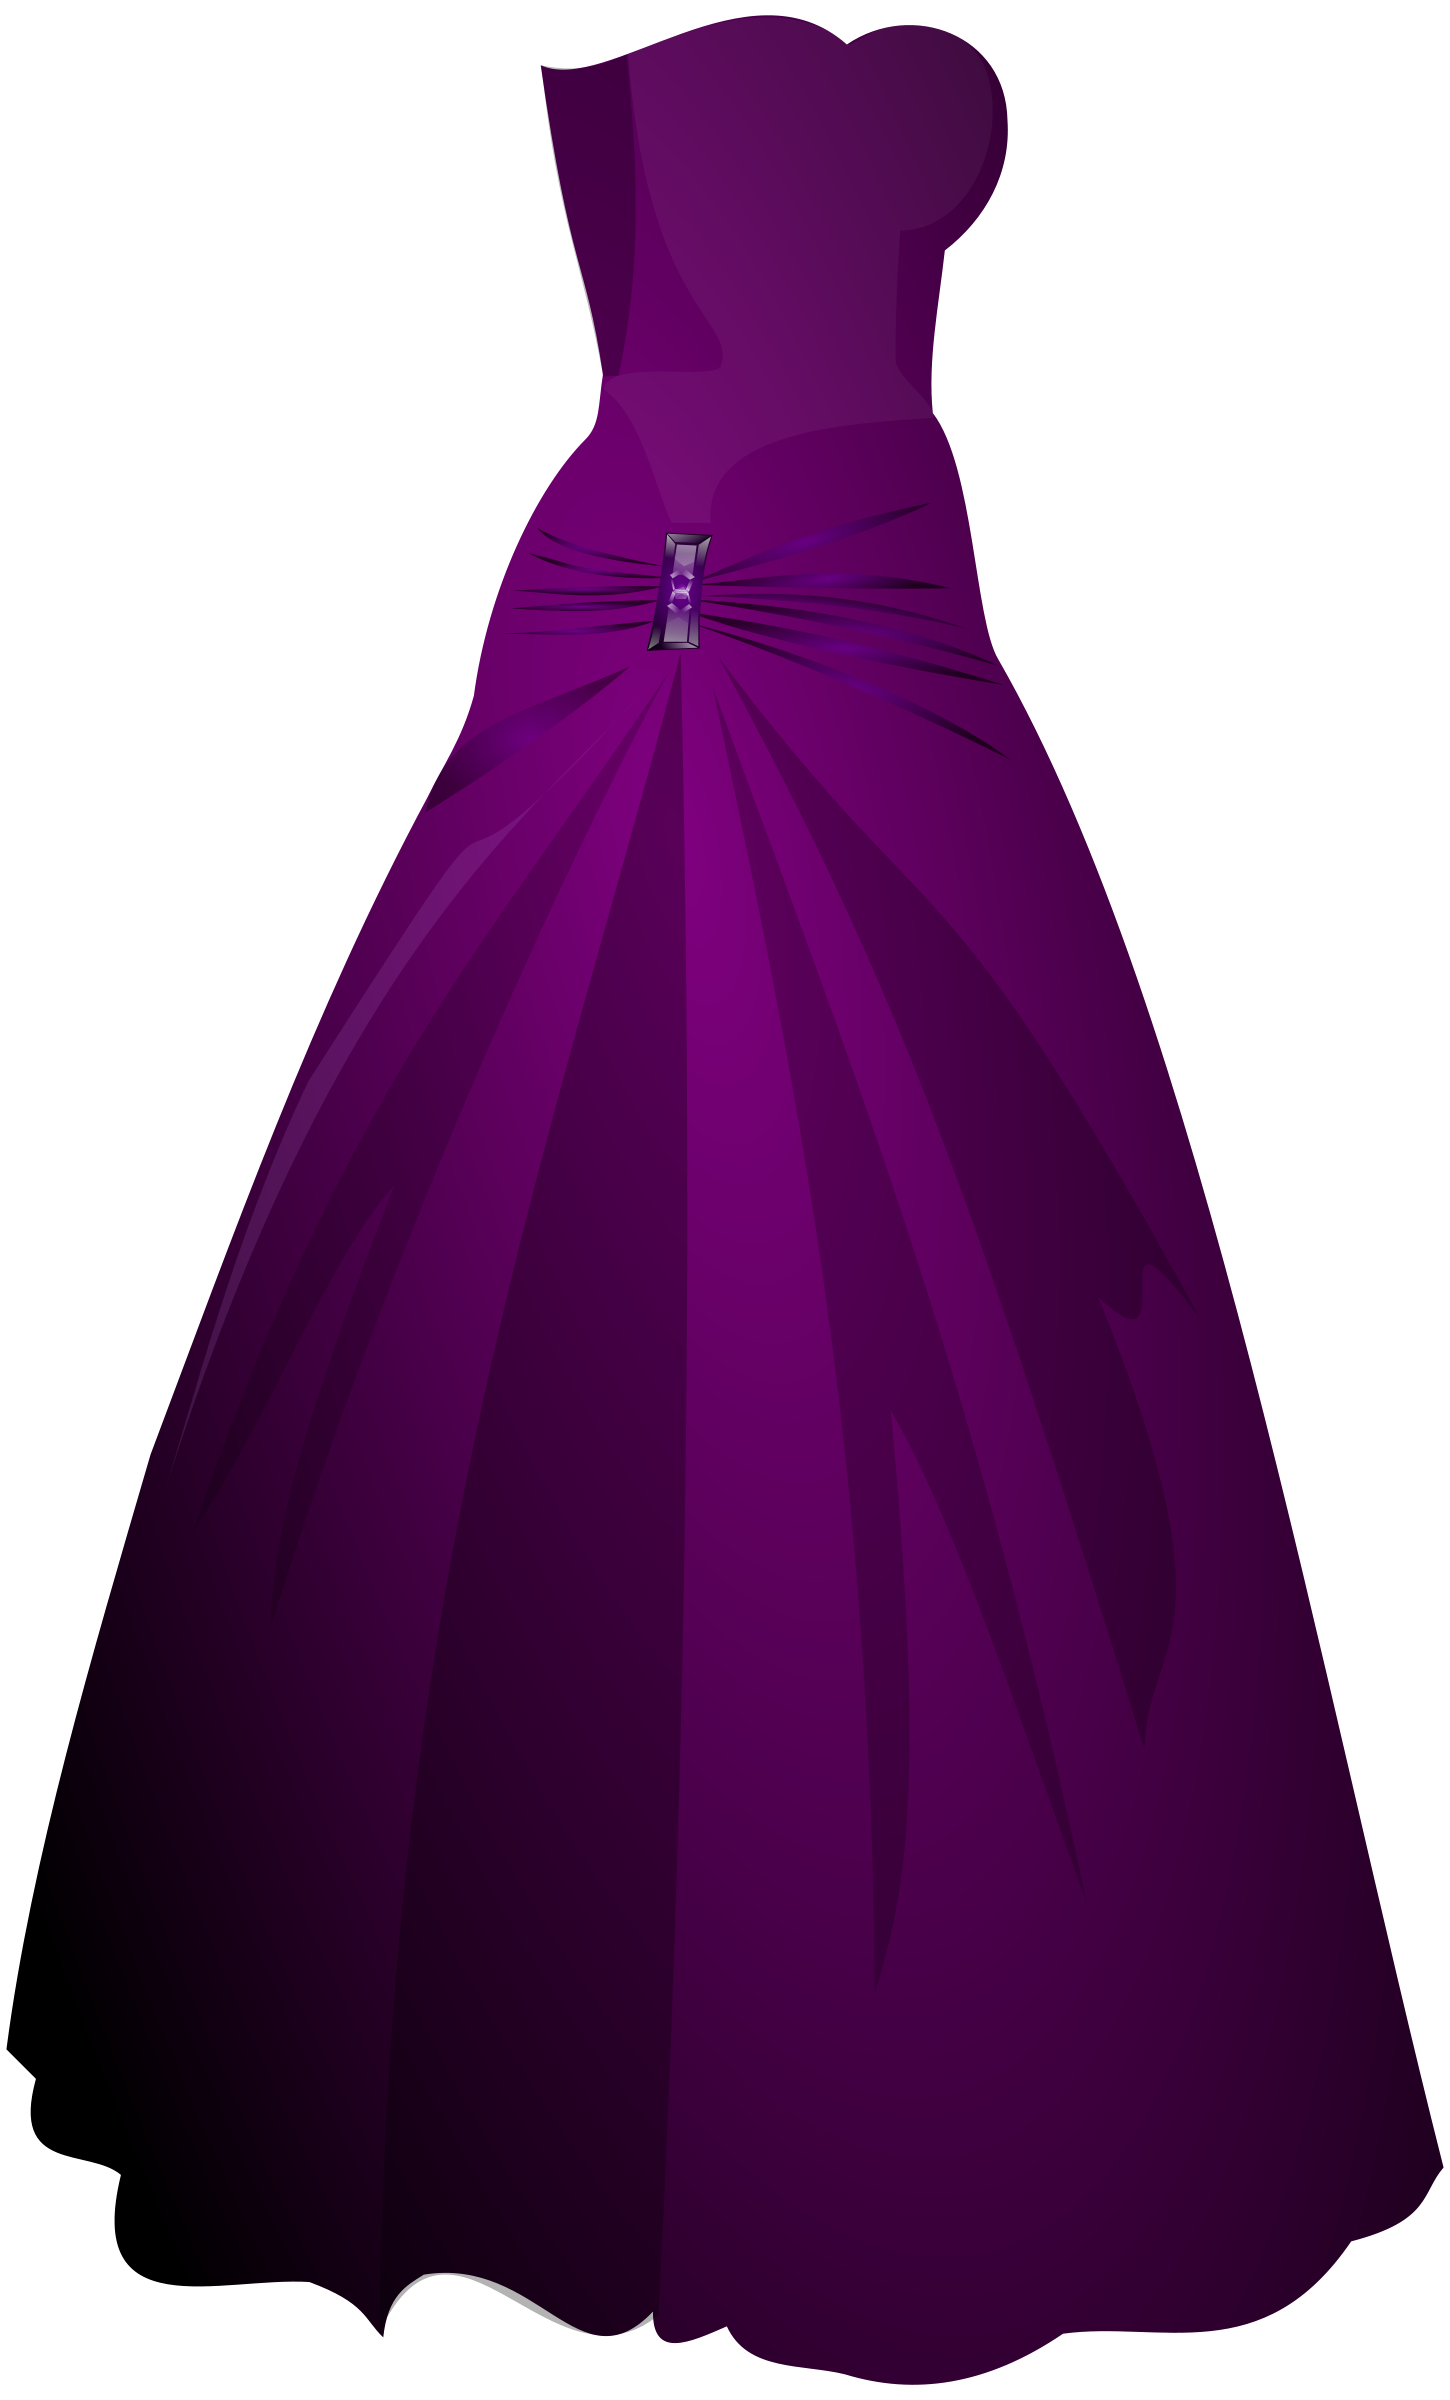 Dress clipart prom dress Dresses Long Clip Online Prom